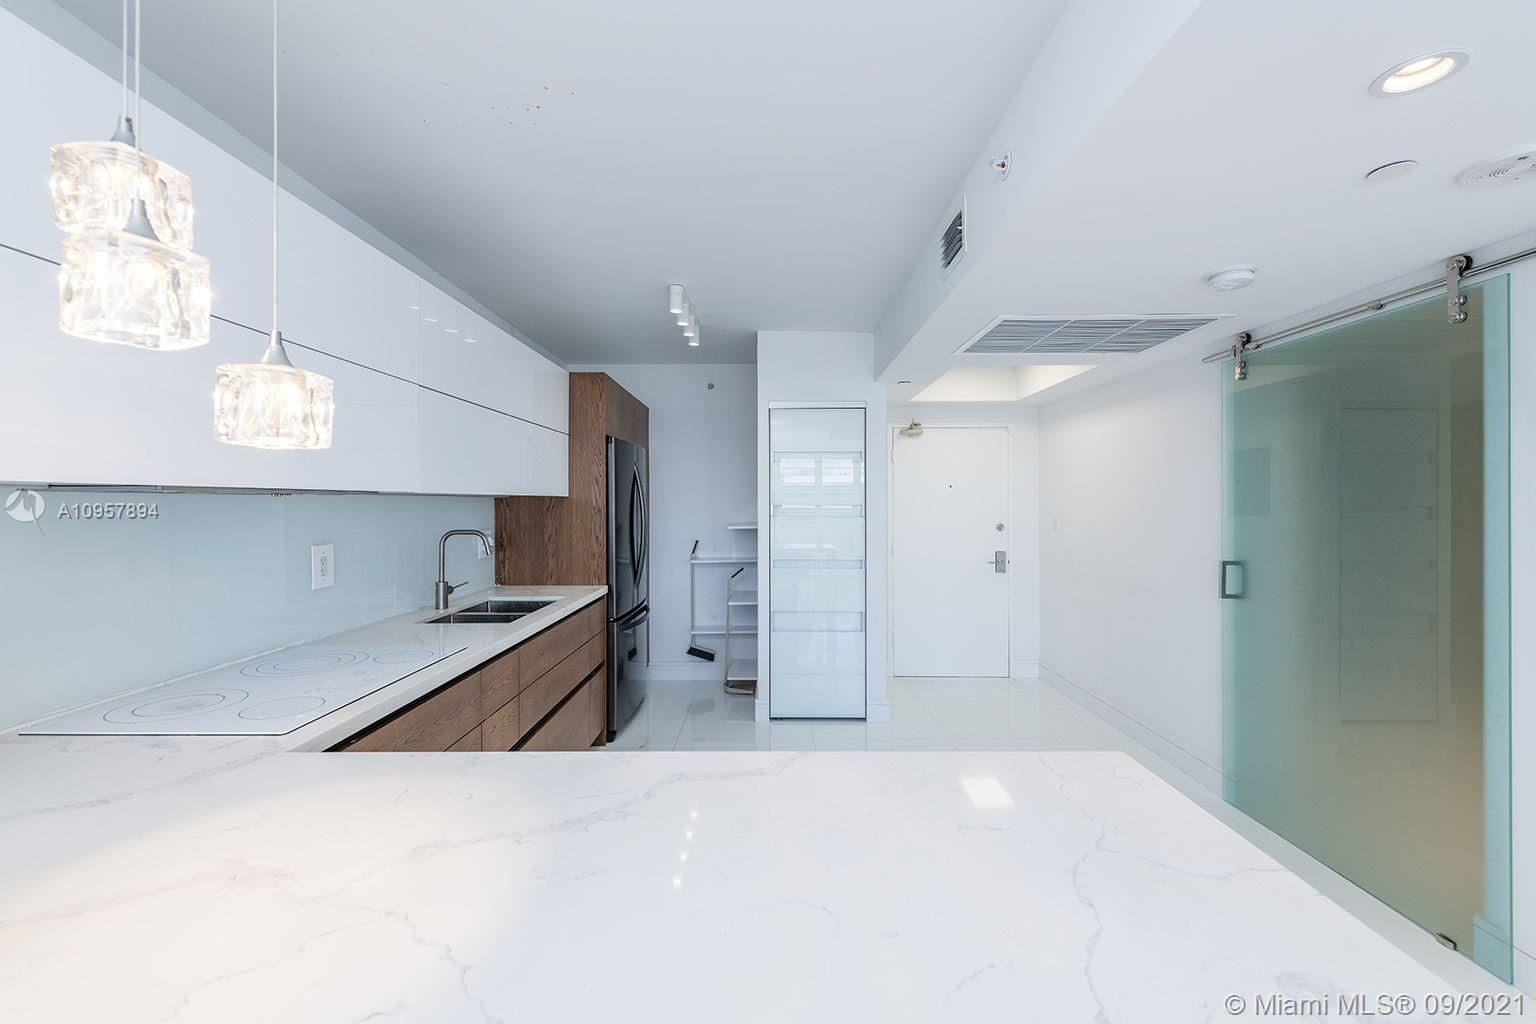 100 Lincoln Rd #1223, Miami Beach, FL 33139 - #: A10957894